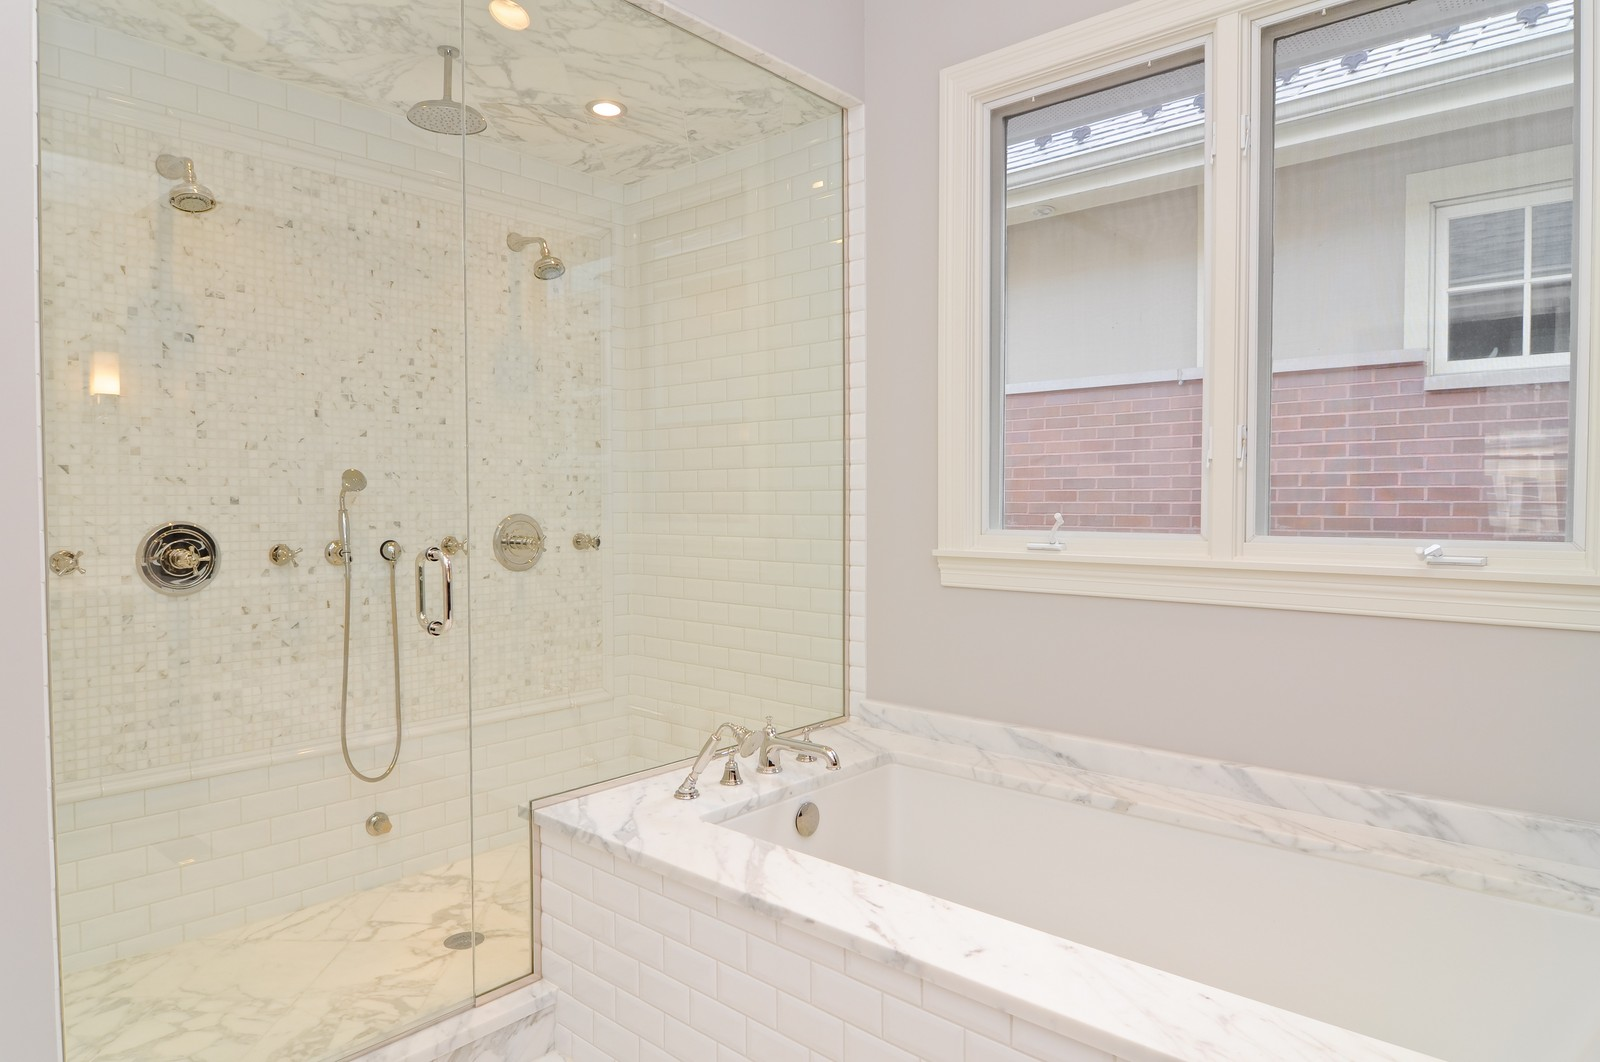 Real Estate Photography - 3845 N Paulina St, Chicago, IL, 60613 - Master Bathroom